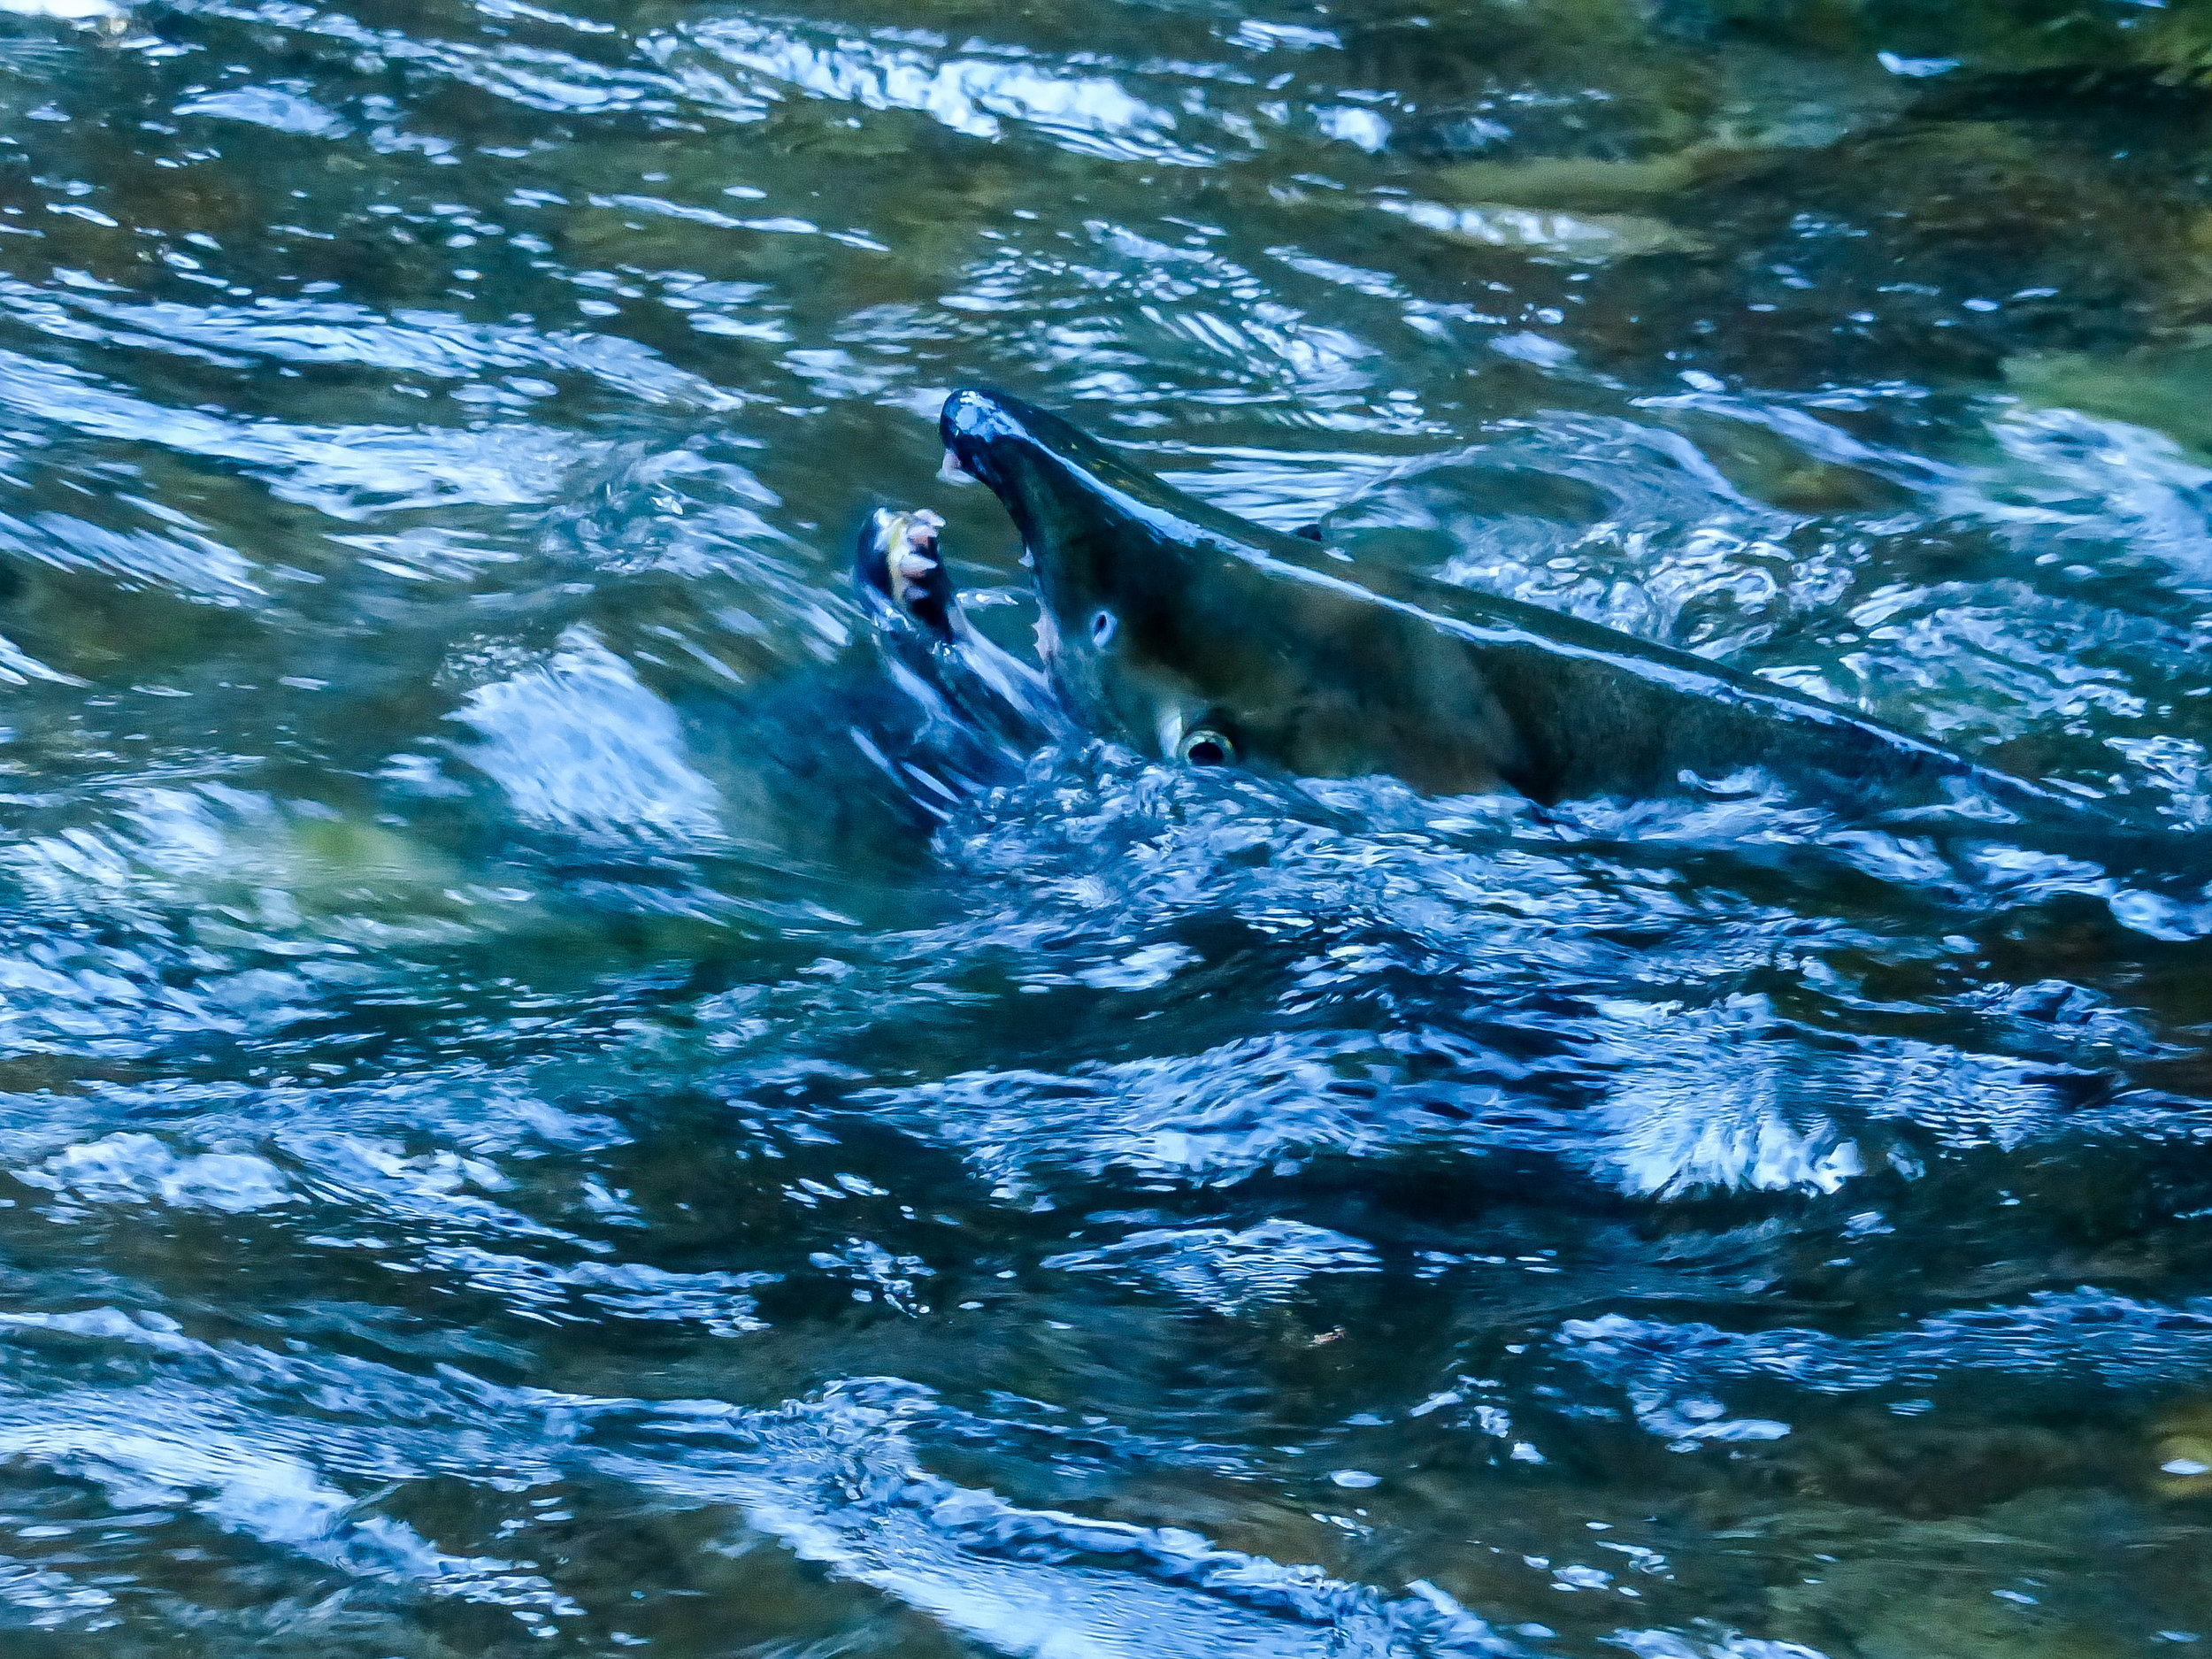 A Chum salmon braving the migration upstream after a heavy rain. Photo © David Ryan / TNC